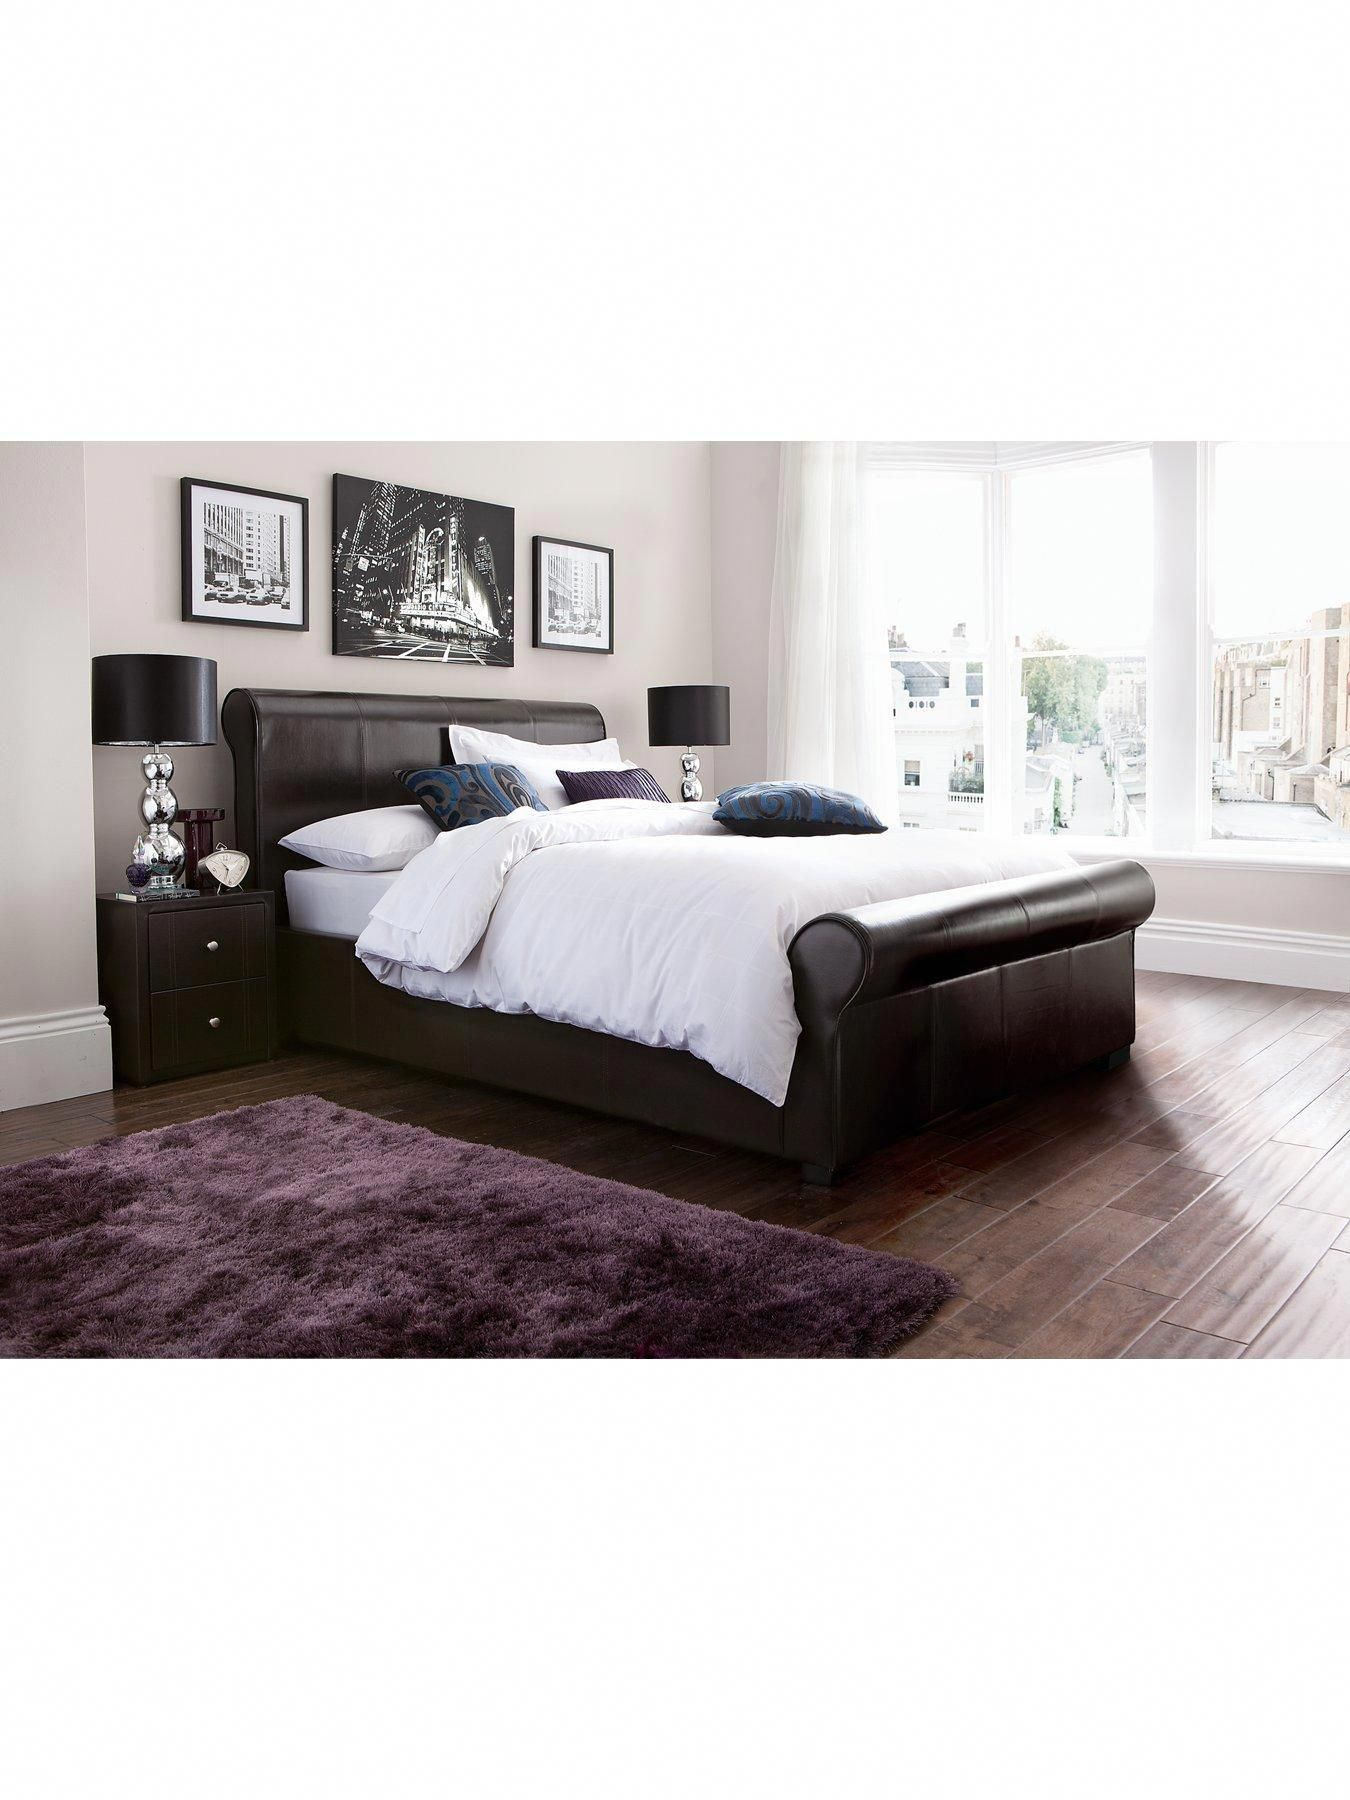 Madrid Storage King Madrid Faux Leather Storage Bed Frame In Double And King Sizes With Money Savi Bed Frame With Storage Bed Linen Design White Linen Bedding